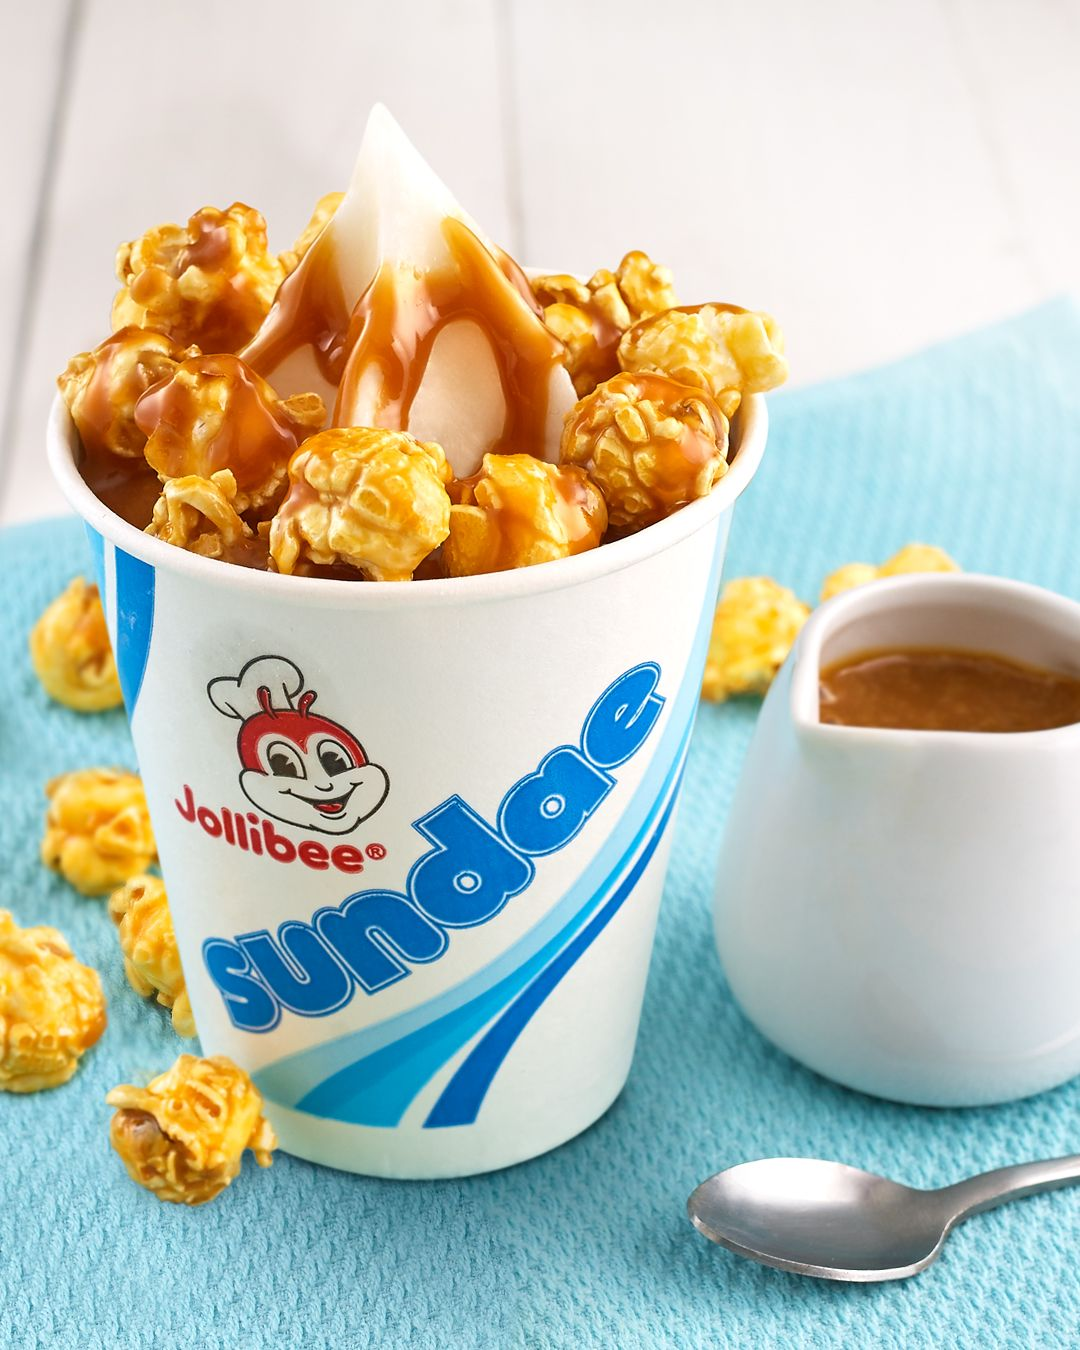 Our favorite caramel sundae just got even better with Jollibee's Caramel Popcorn Sundae Twirl treat